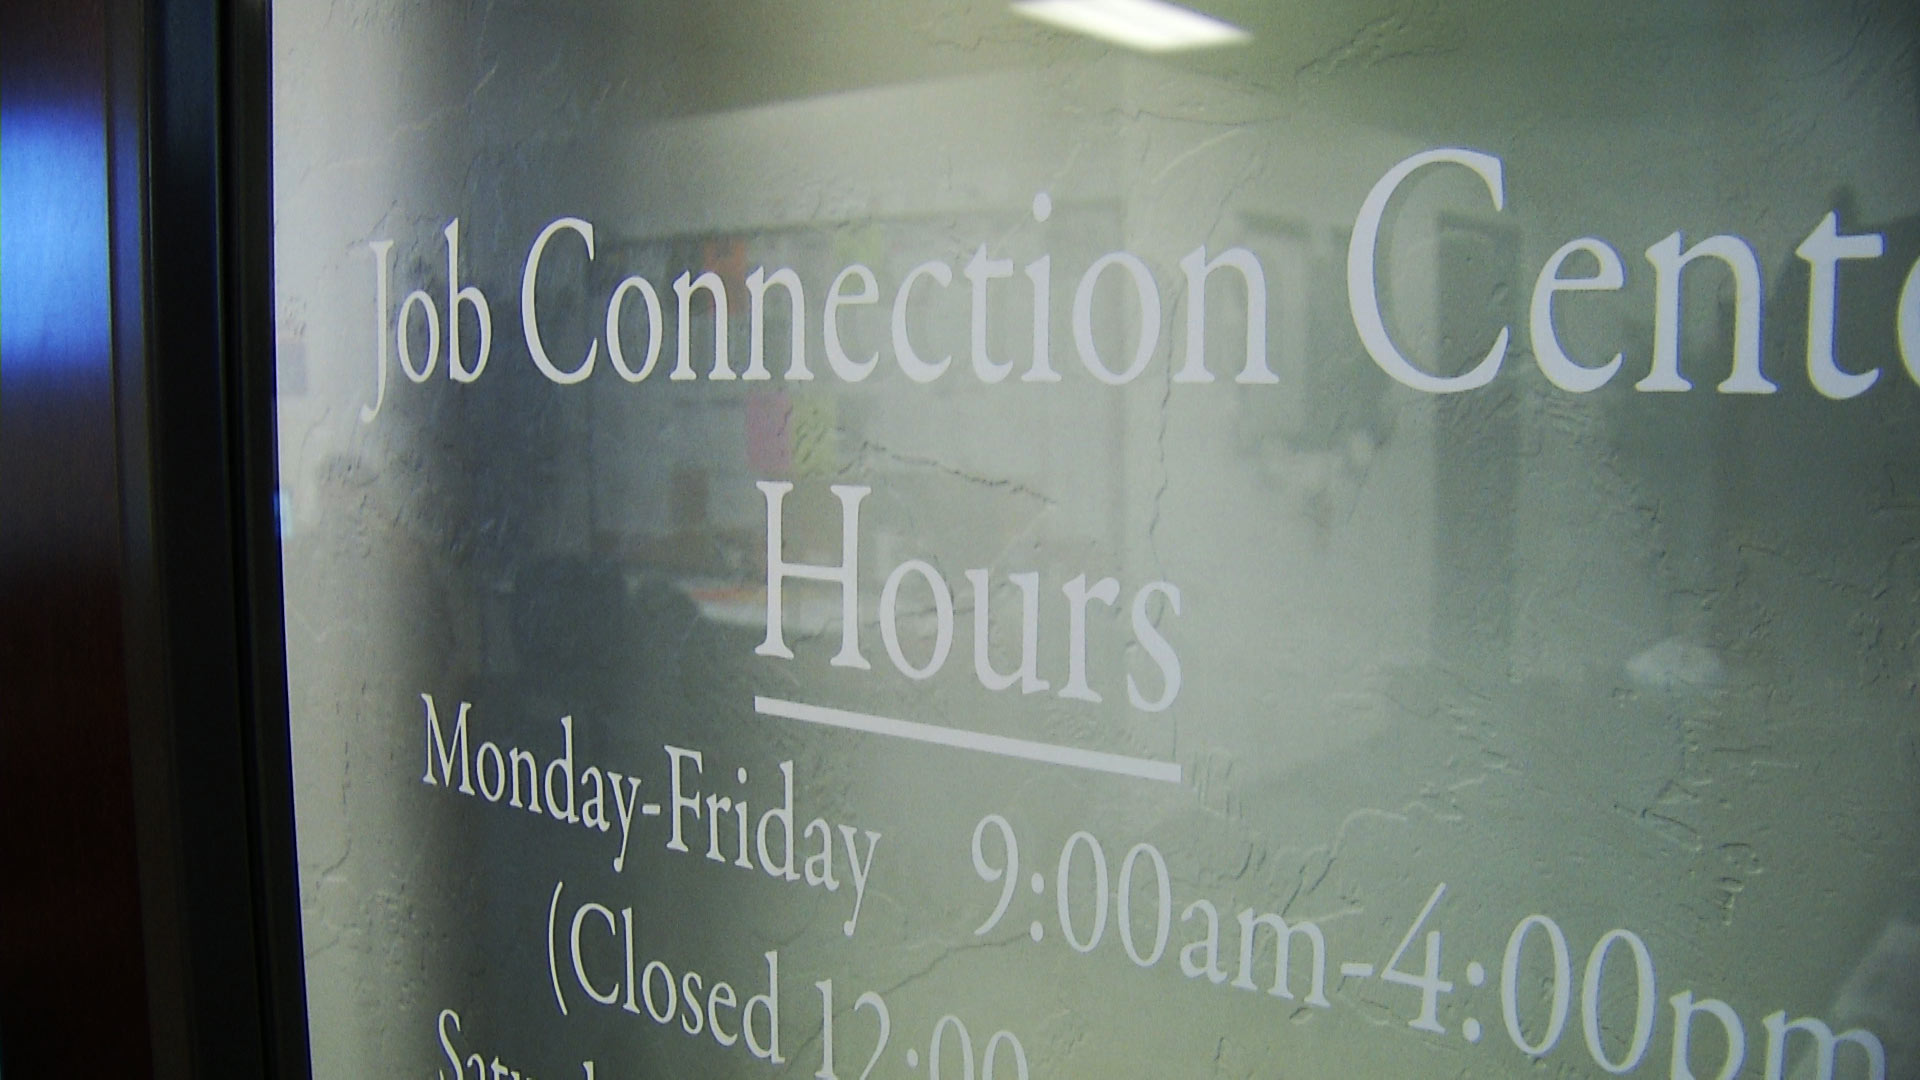 File image of a job connection center in Pima County.